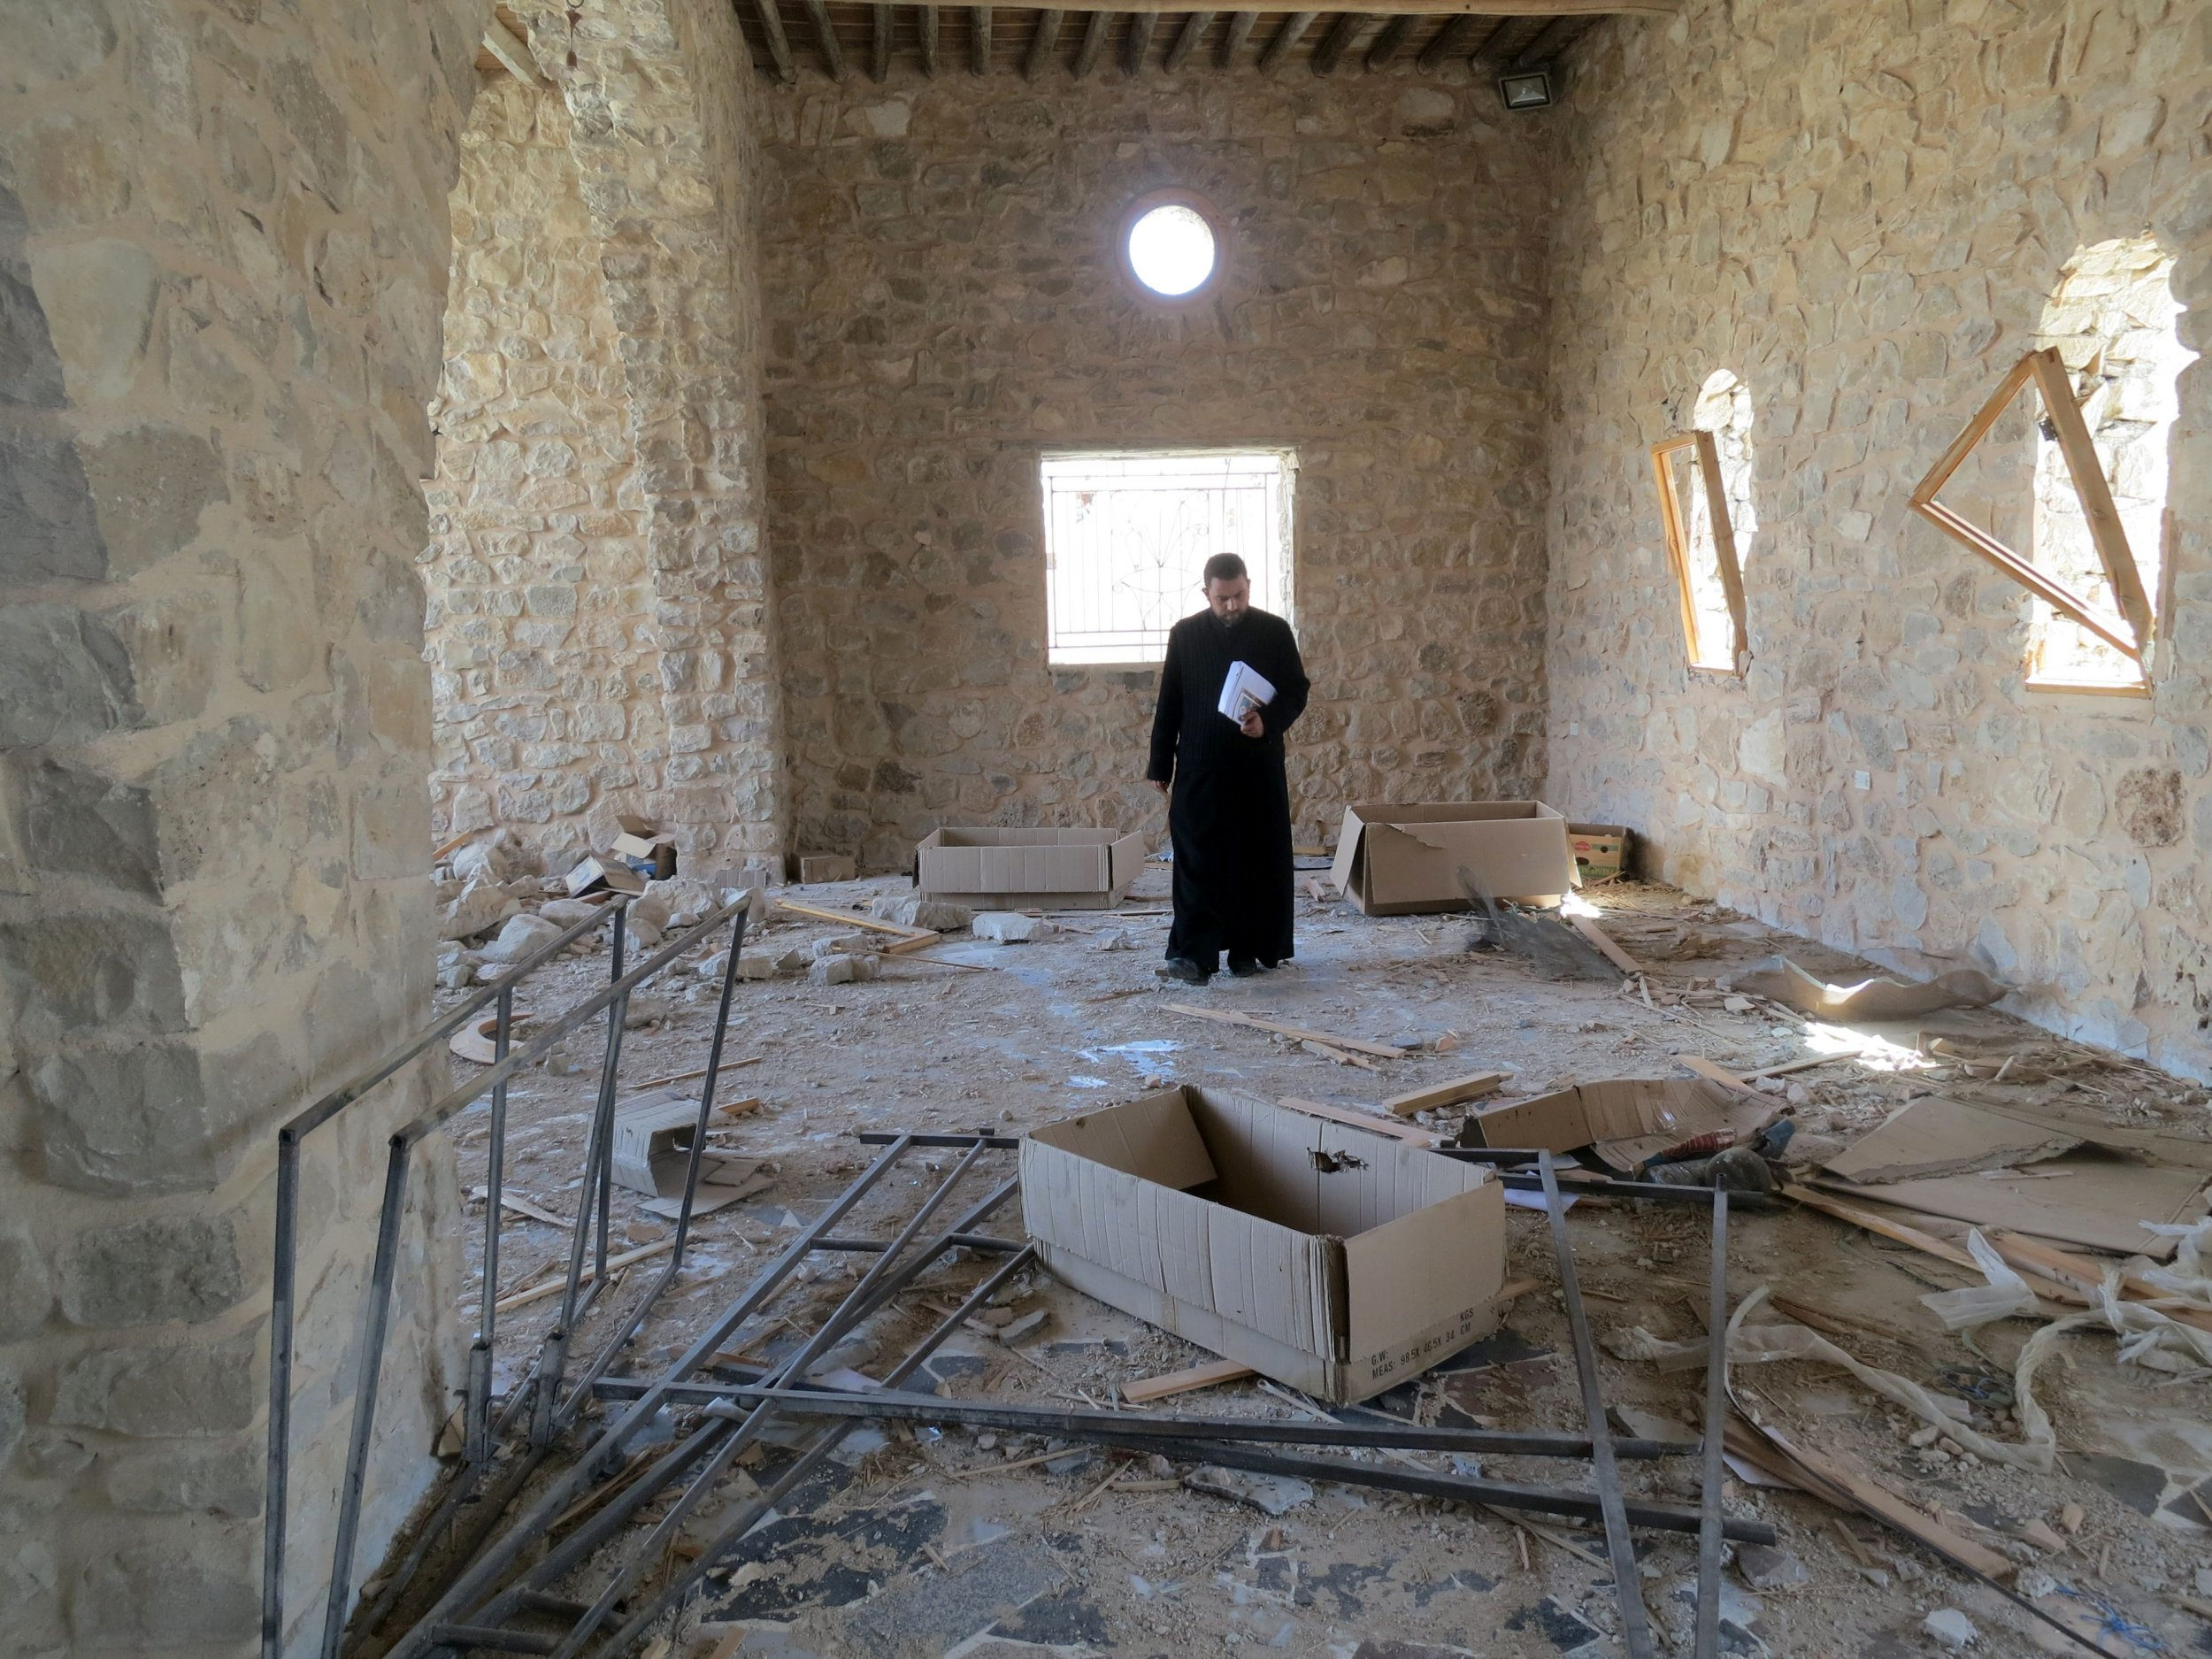 A Catholic priest inspects the damage at Mar Elian monastery in Al-Qaryatain.